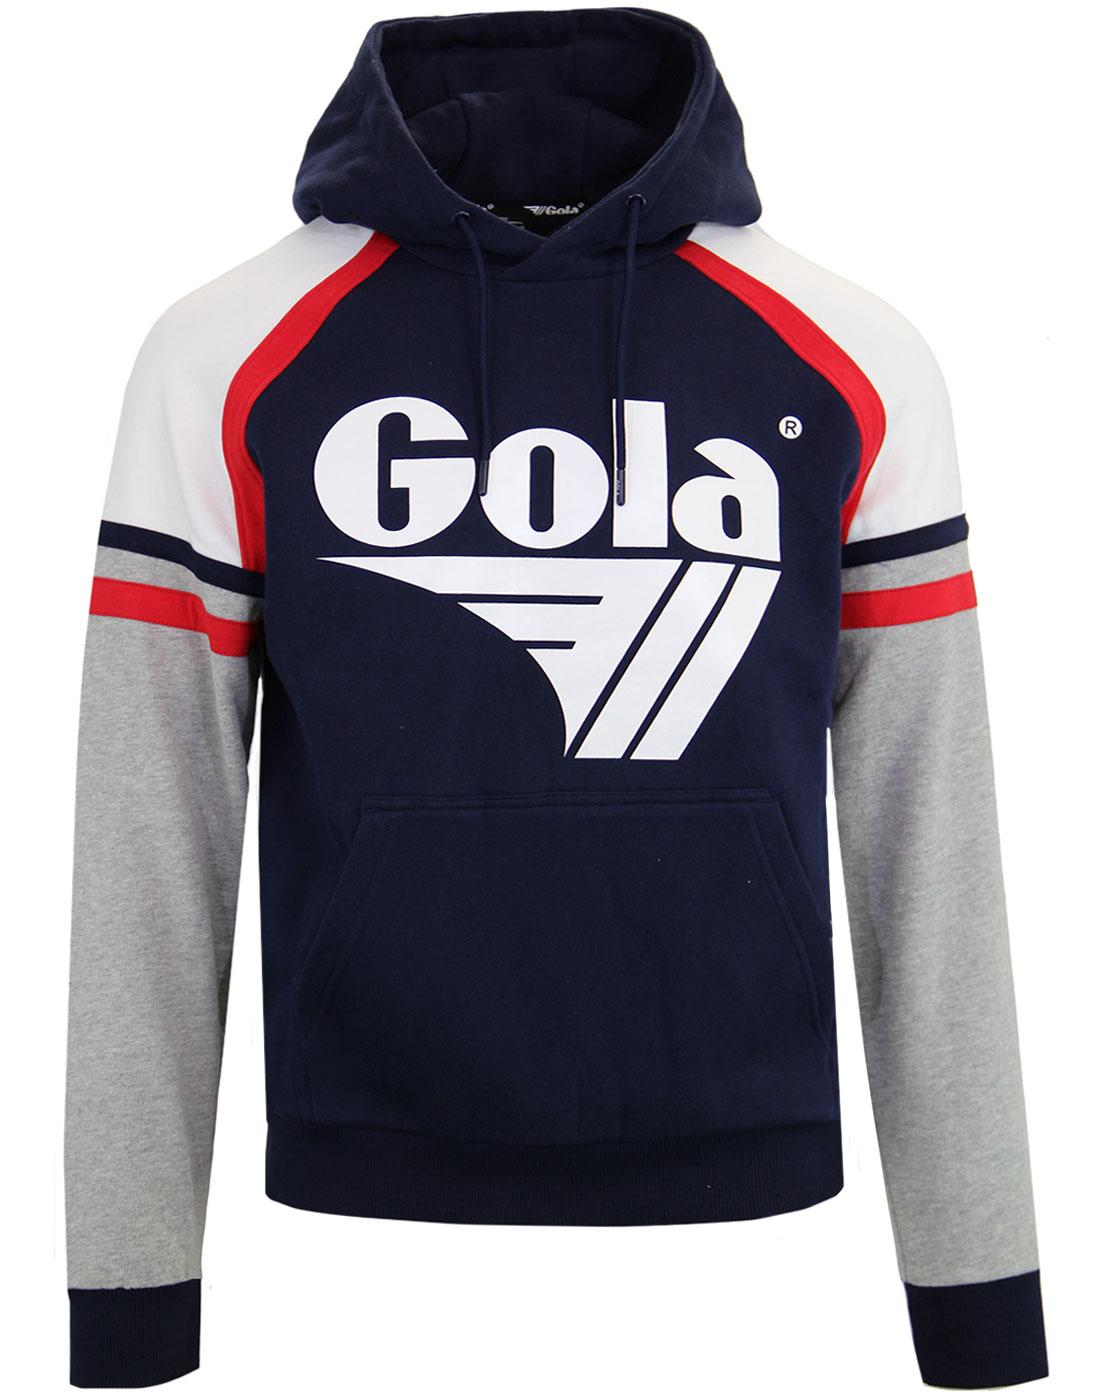 Morgan GOLA CLASSICS Retro 80's Panel Hoodie